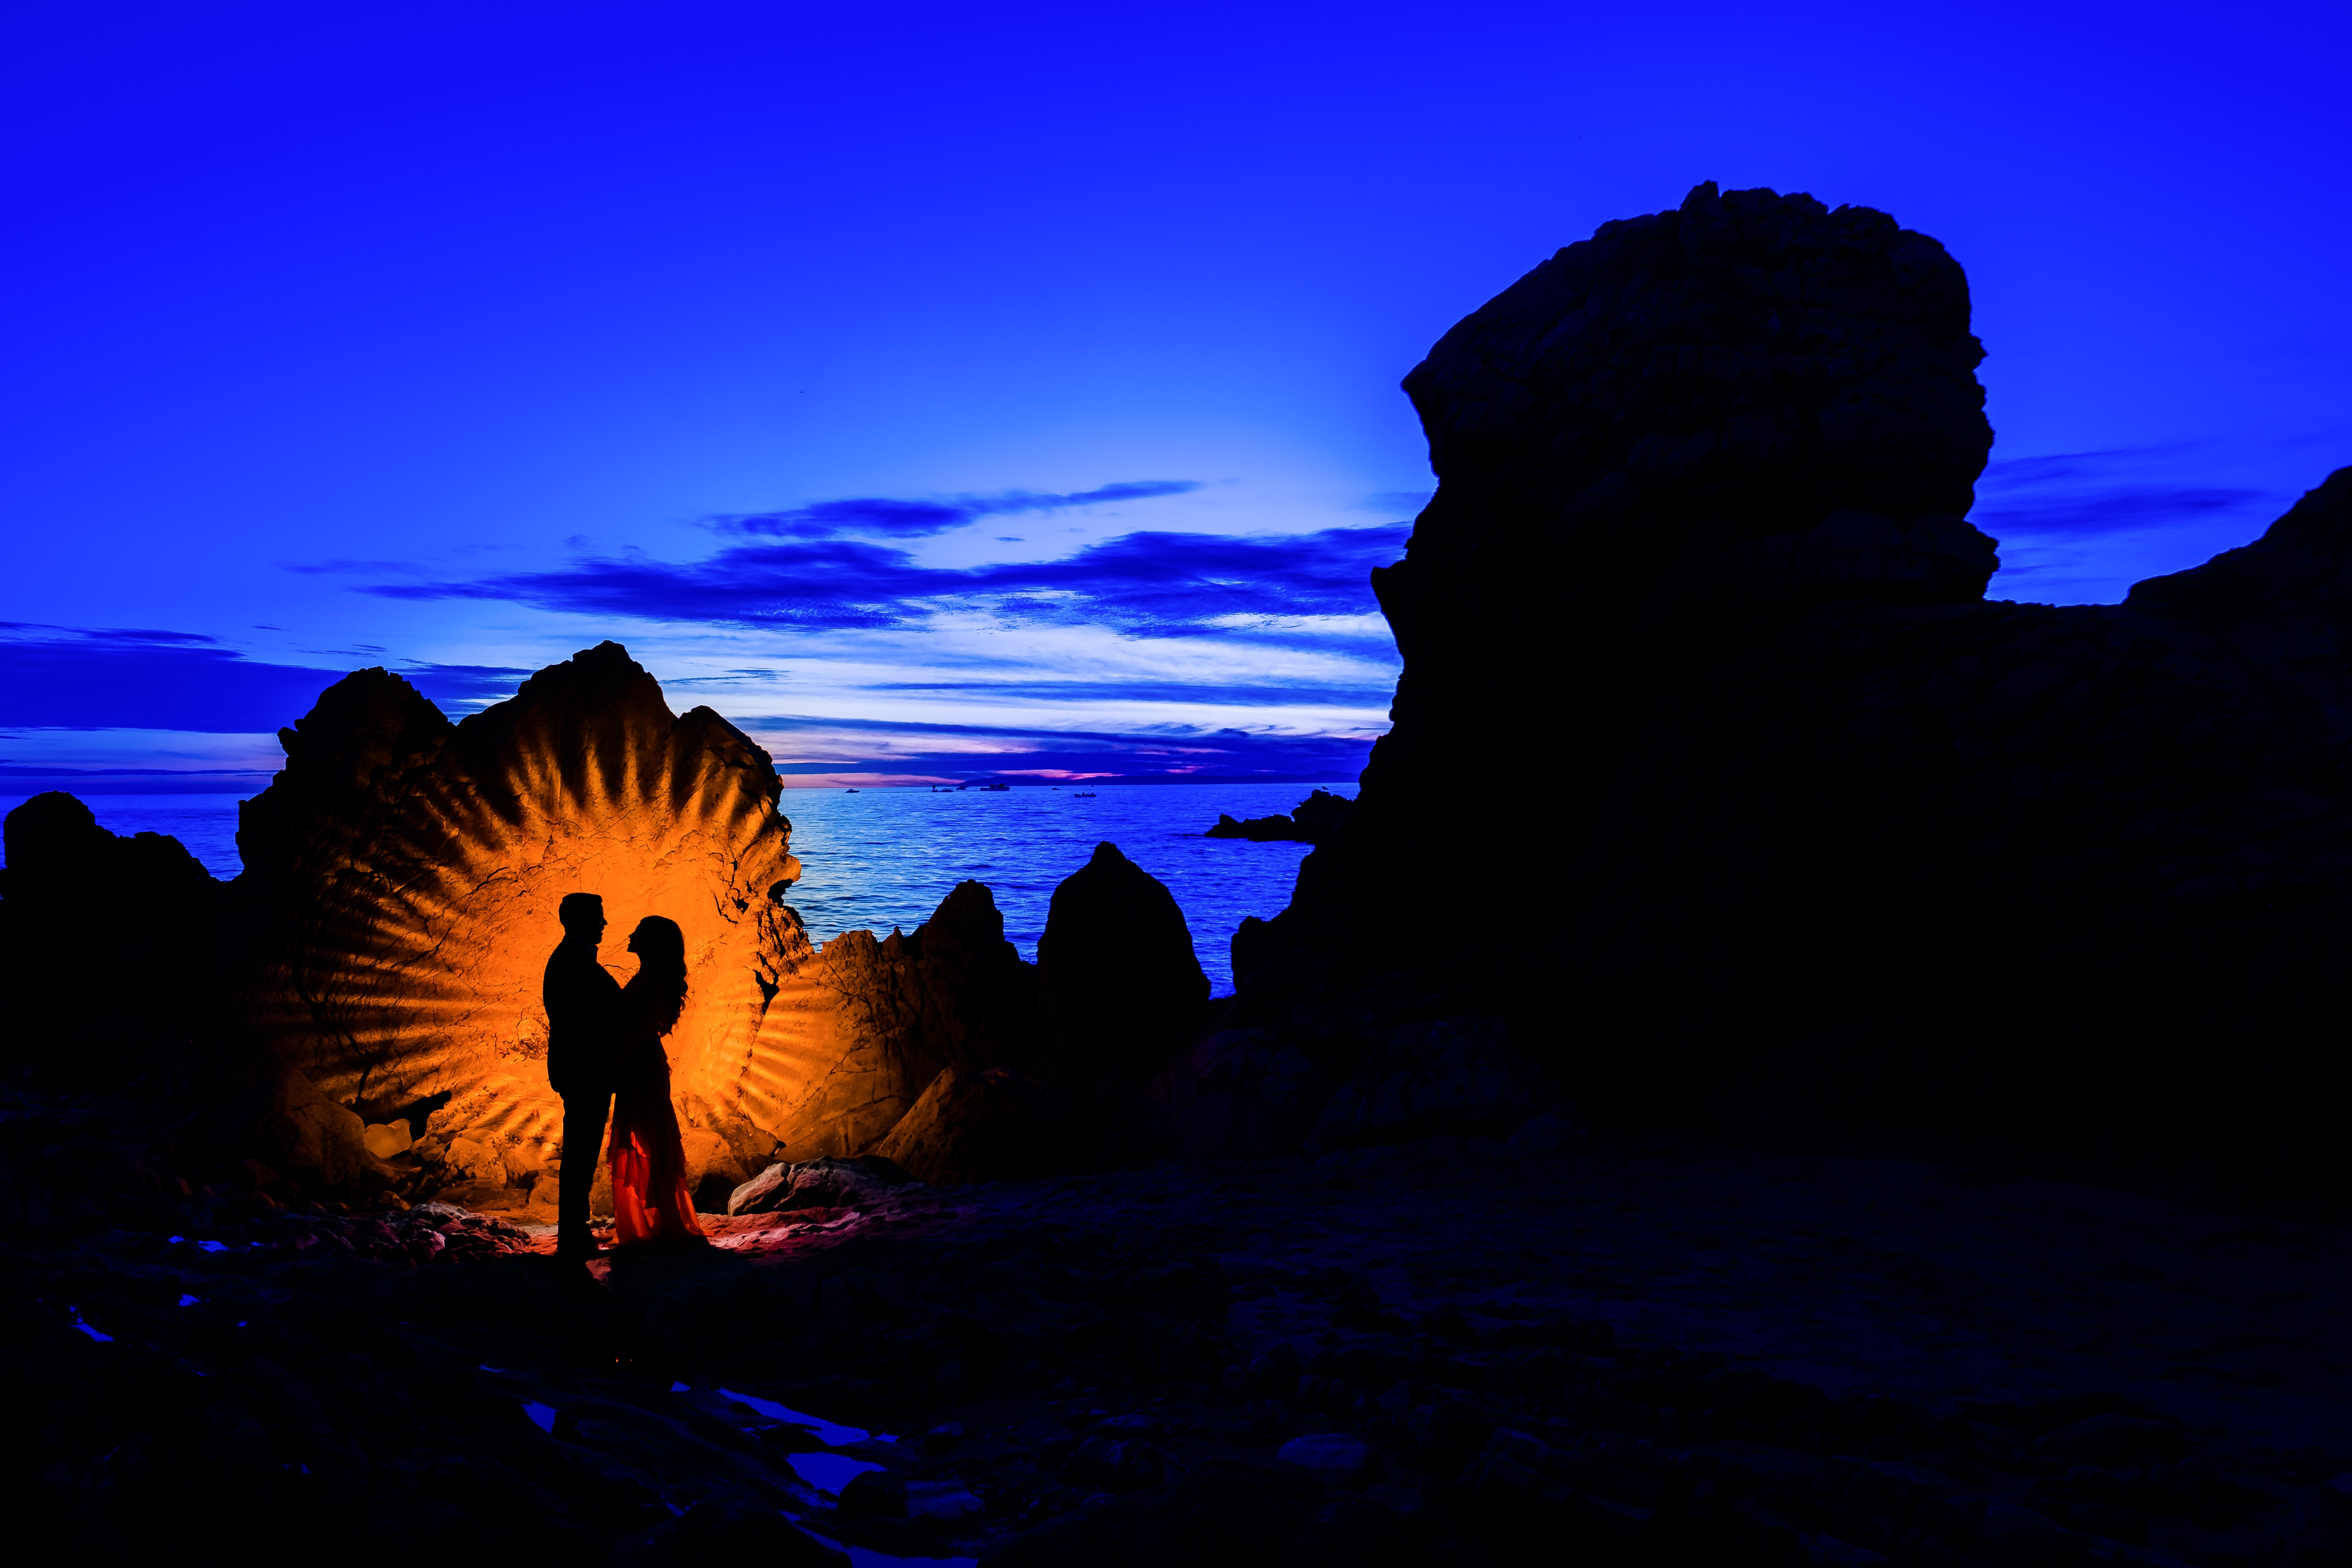 man and woman standing near rock formation near sea in silhouette photography